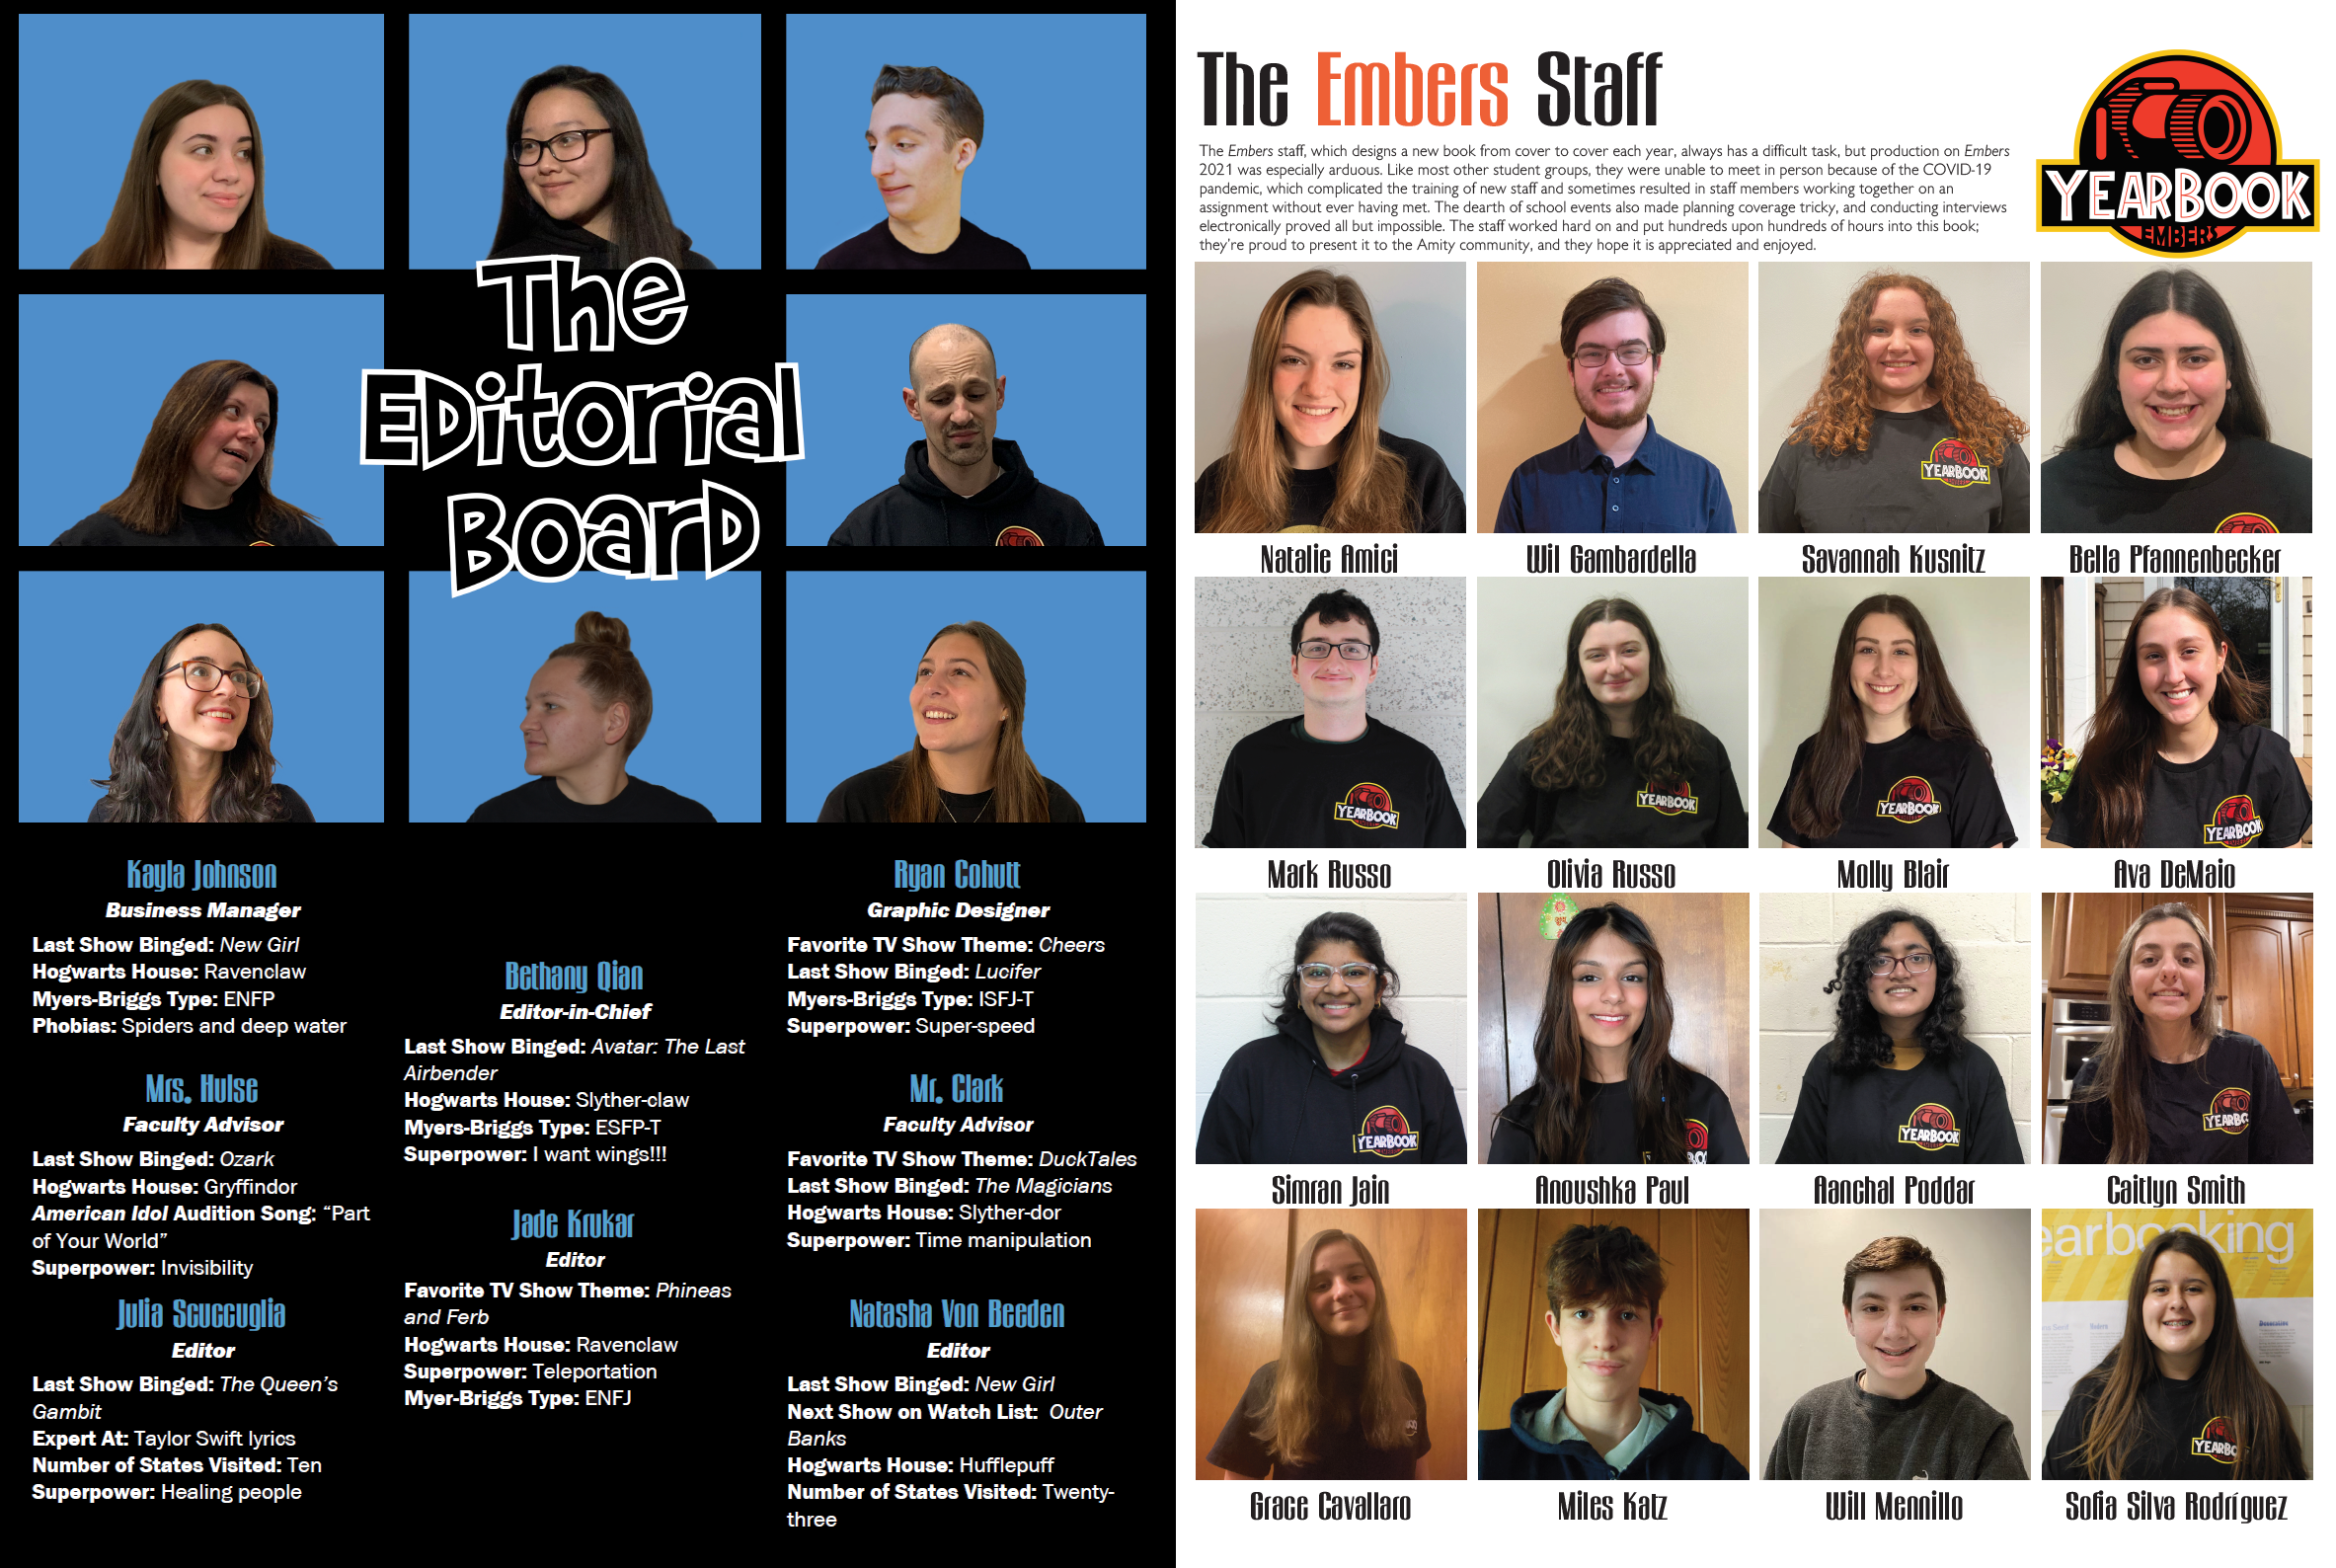 The Embers 2021 Staff